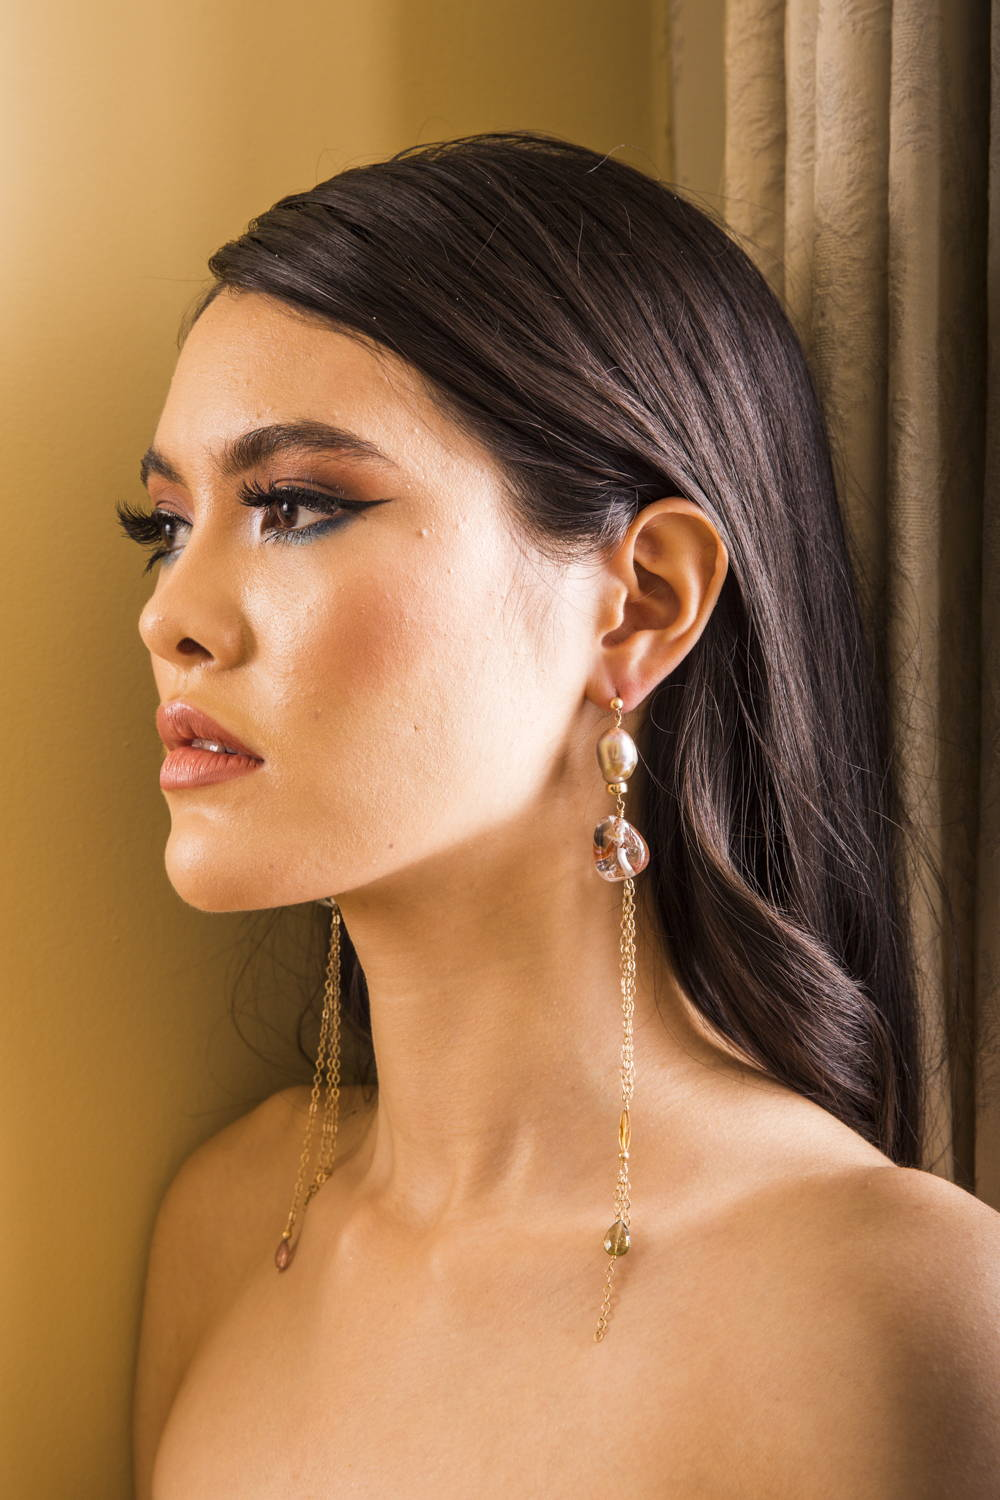 Siren Style Number One: One of our sirens models The Rock Crystal Chandelier Earrings - Mismatched organic rock crystal nuggets with rust/moss inclusions hang from pale pink baroque pearls, trailing citrine and watermelon tourmaline drops.